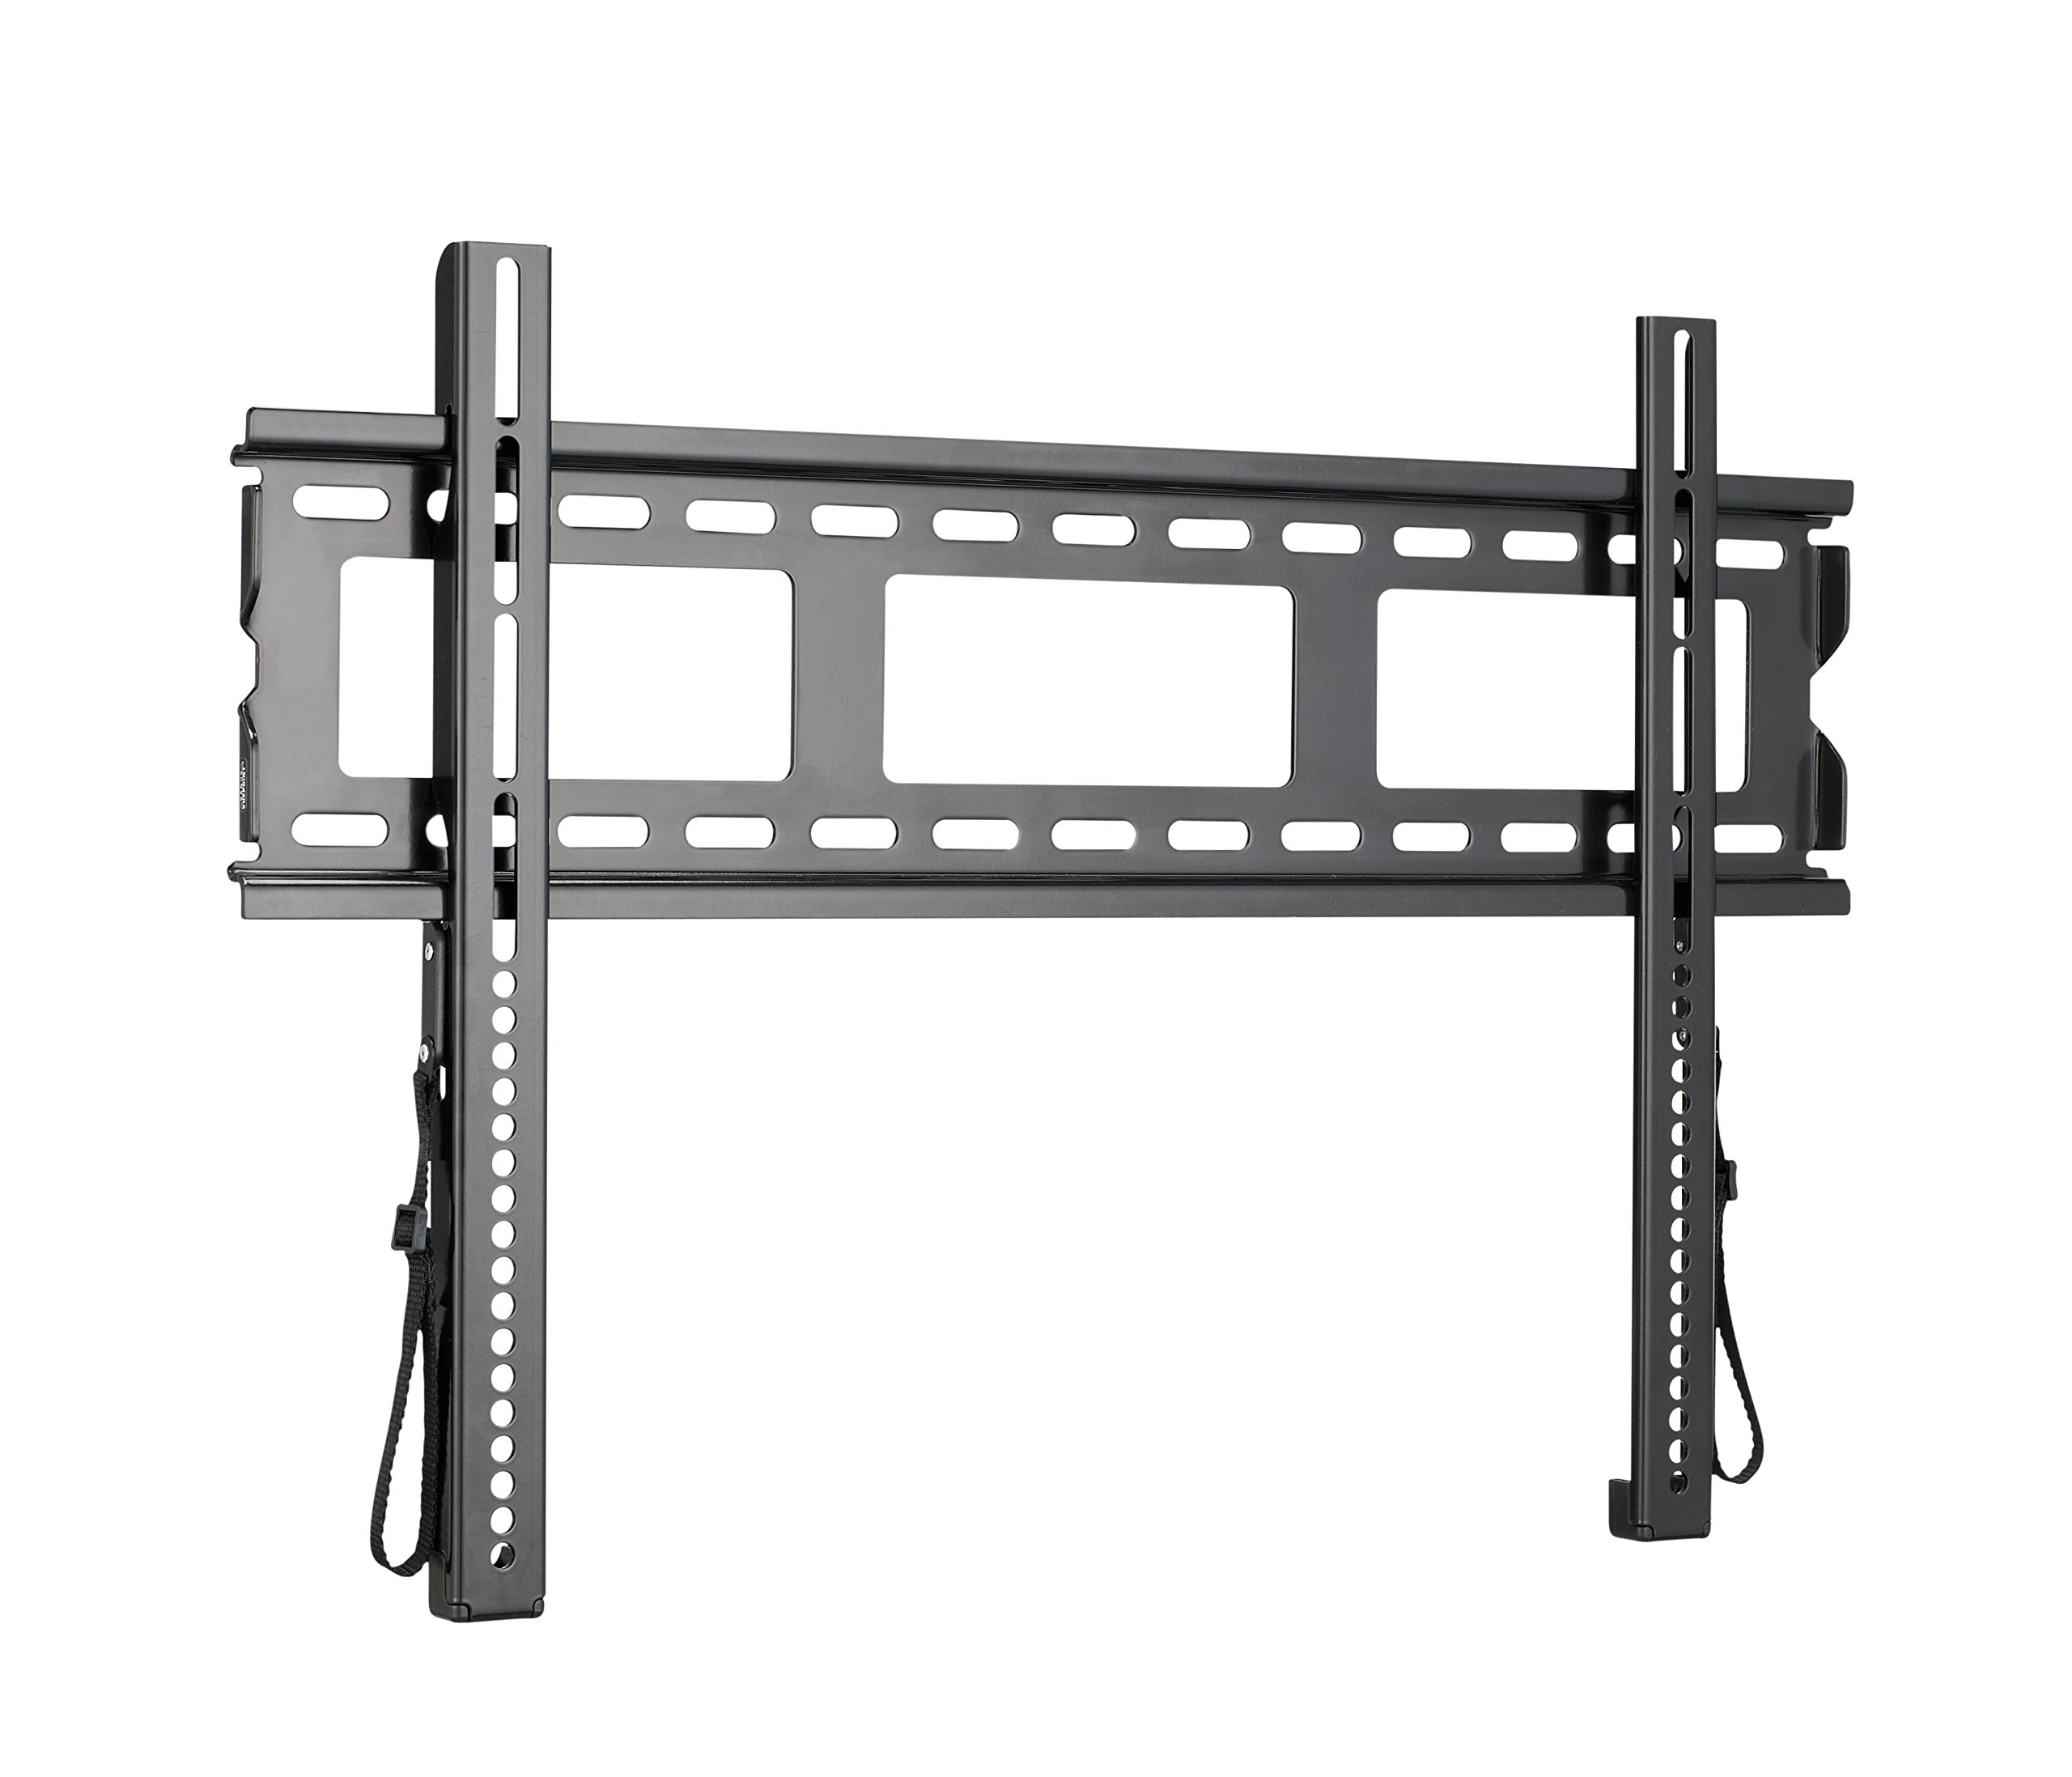 Sanus Super Low Profile TV Wall Mount for 37''-80'' LED, LCD and Plasma Flat and Curved Screen TVs and Monitors - MLL11-B1 by Sanus